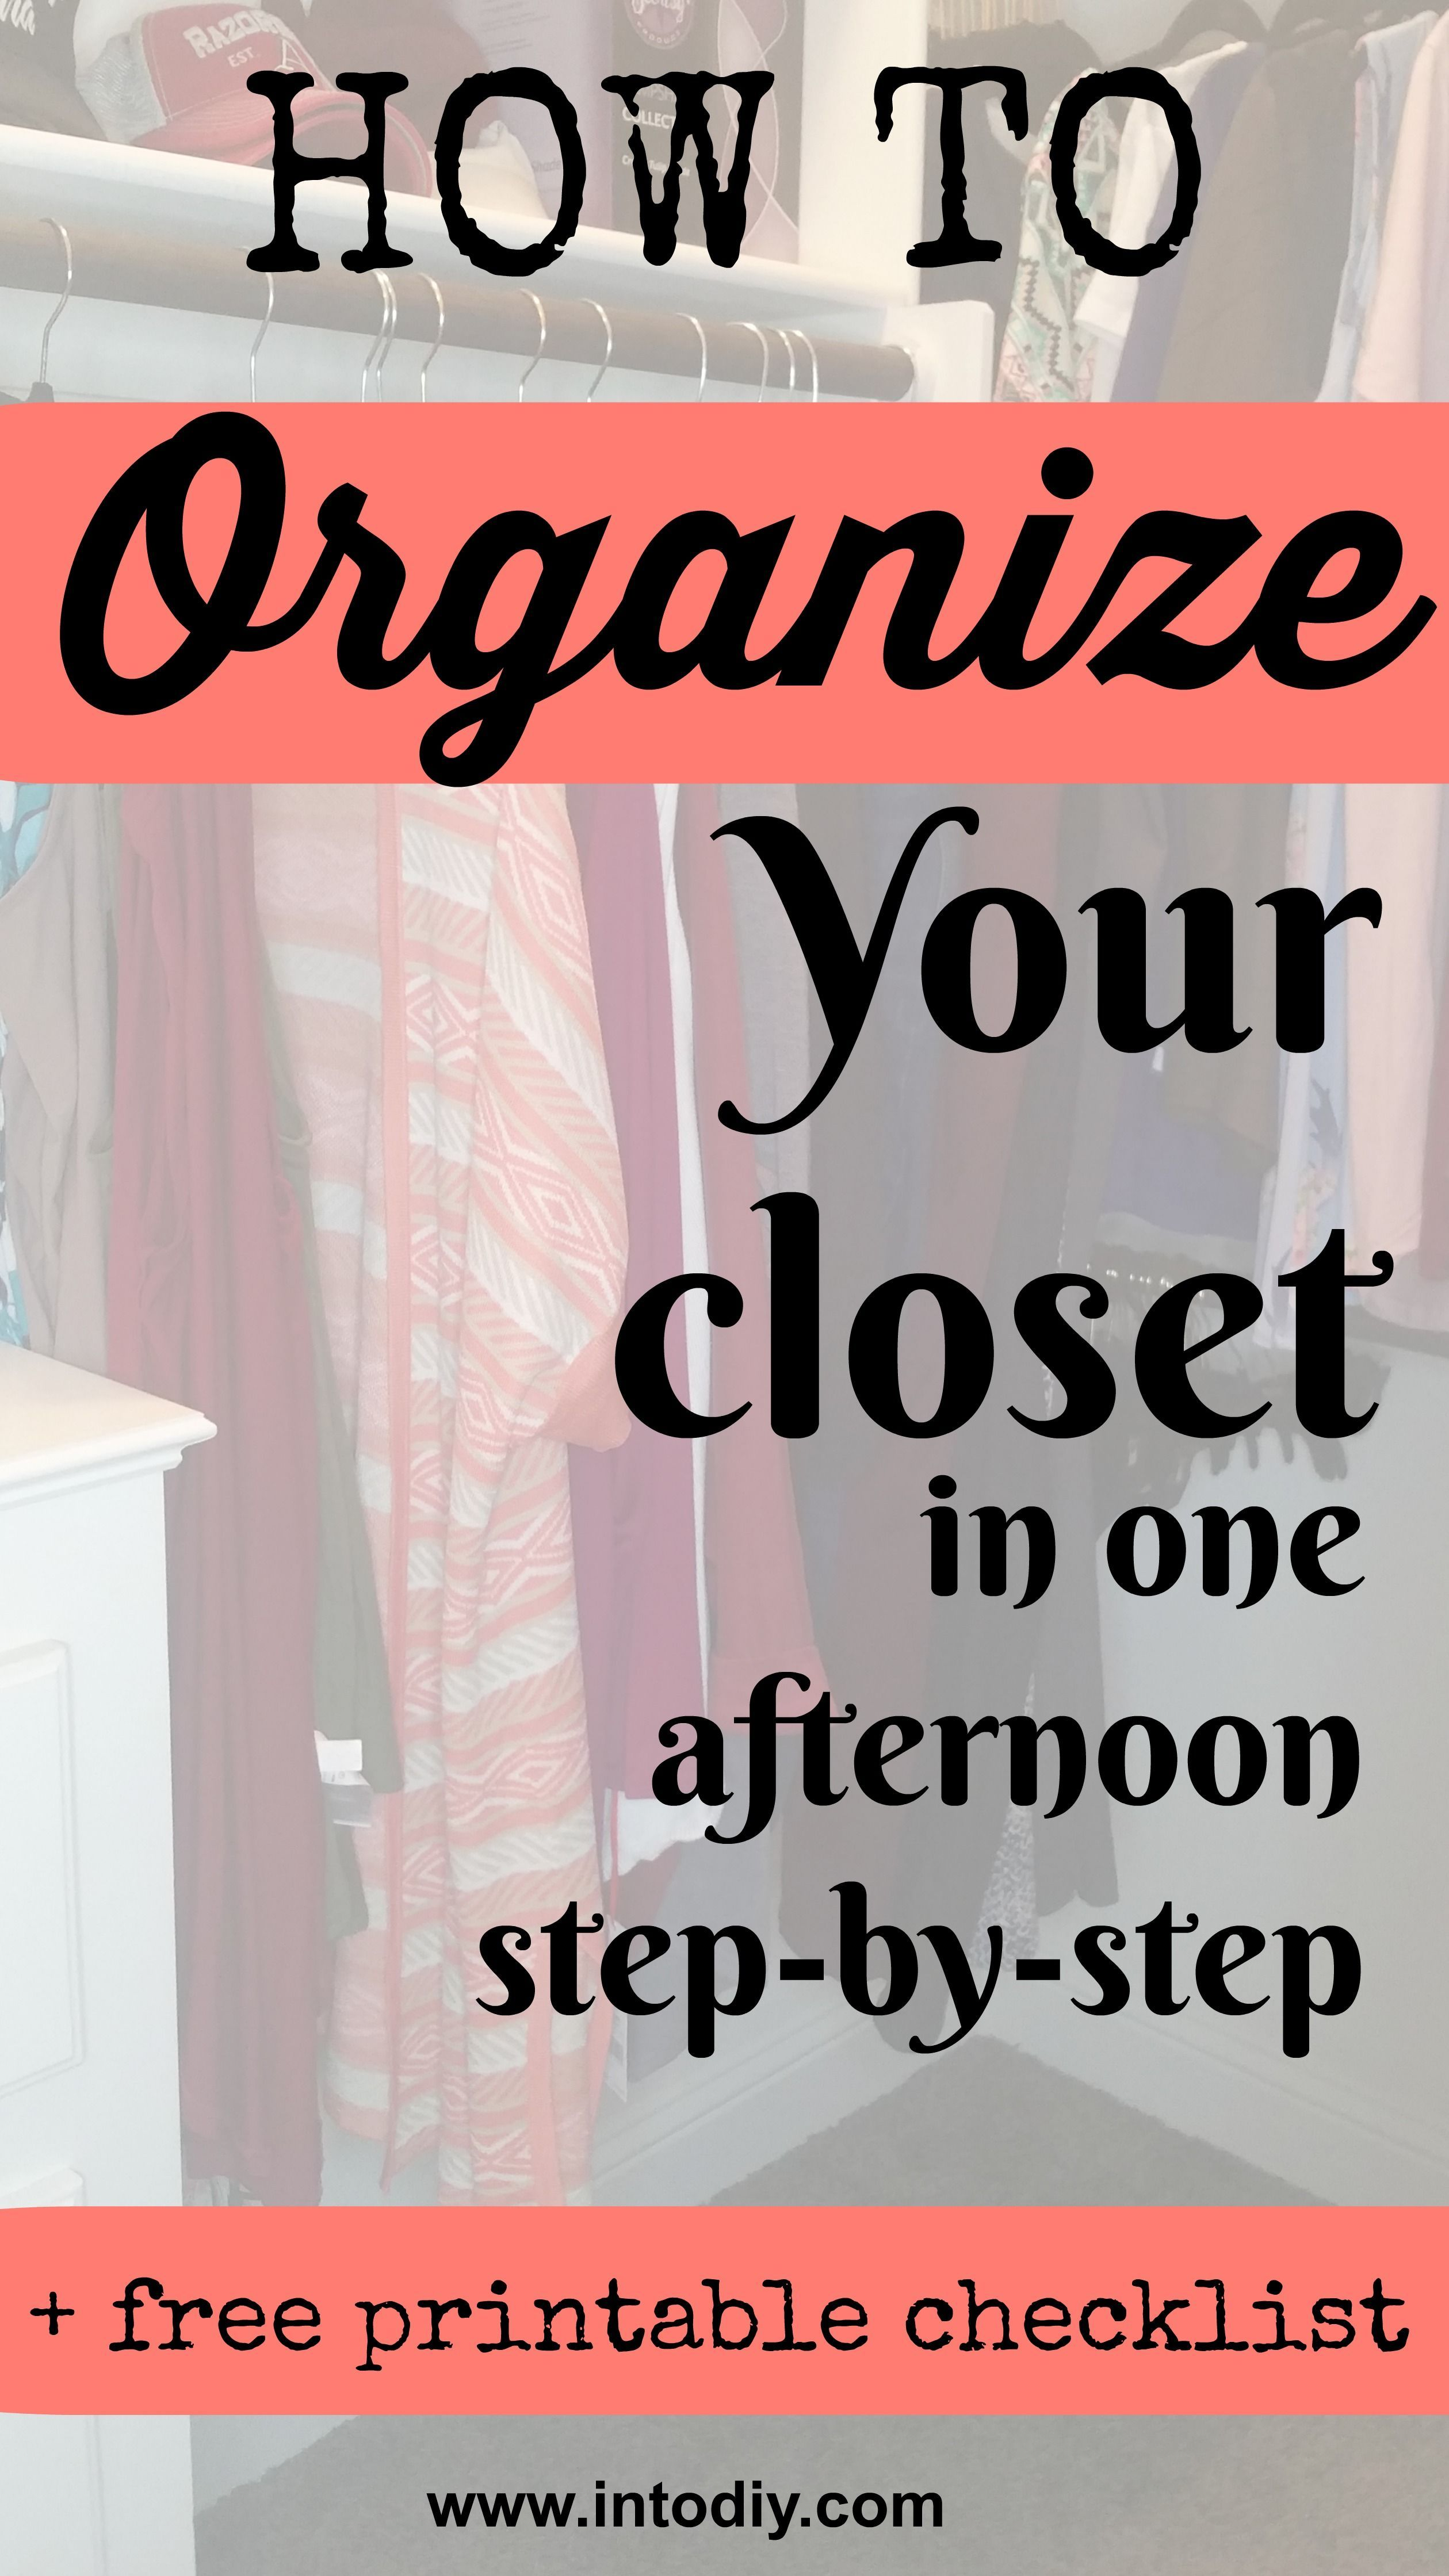 How To Organize Your Closet Step By Step | FREE Printable Checklist